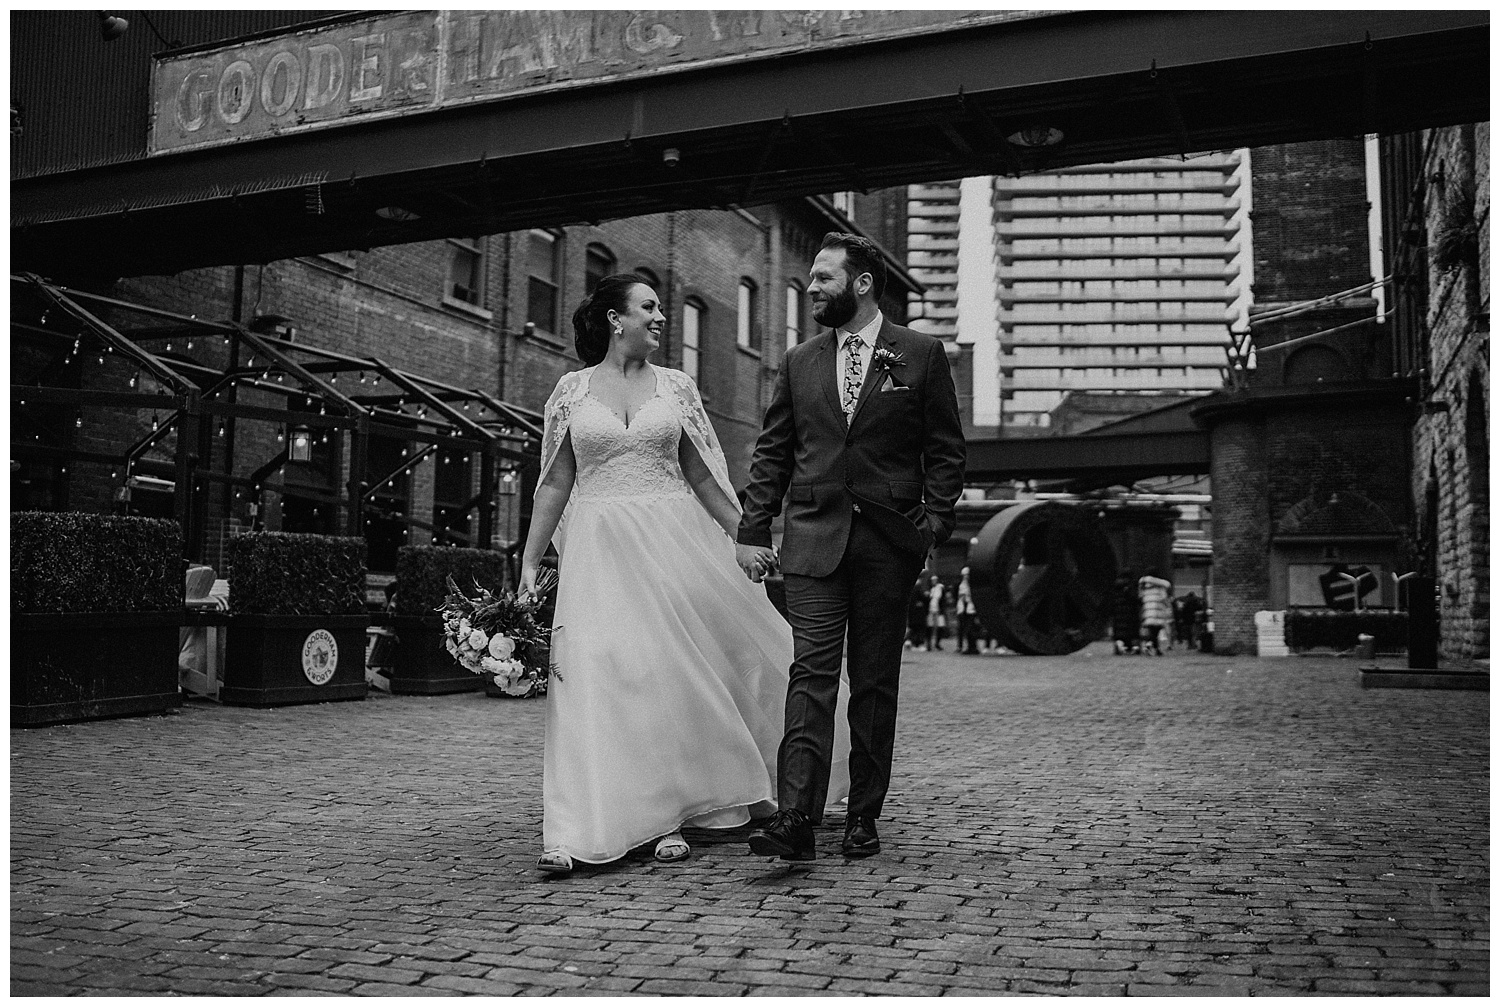 Katie Marie Photography | Archeo Wedding Arta Gallery Wedding | Distillery District Wedding | Toronto Wedding Photographer | Hamilton Toronto Ontario Wedding Photographer |_0035.jpg